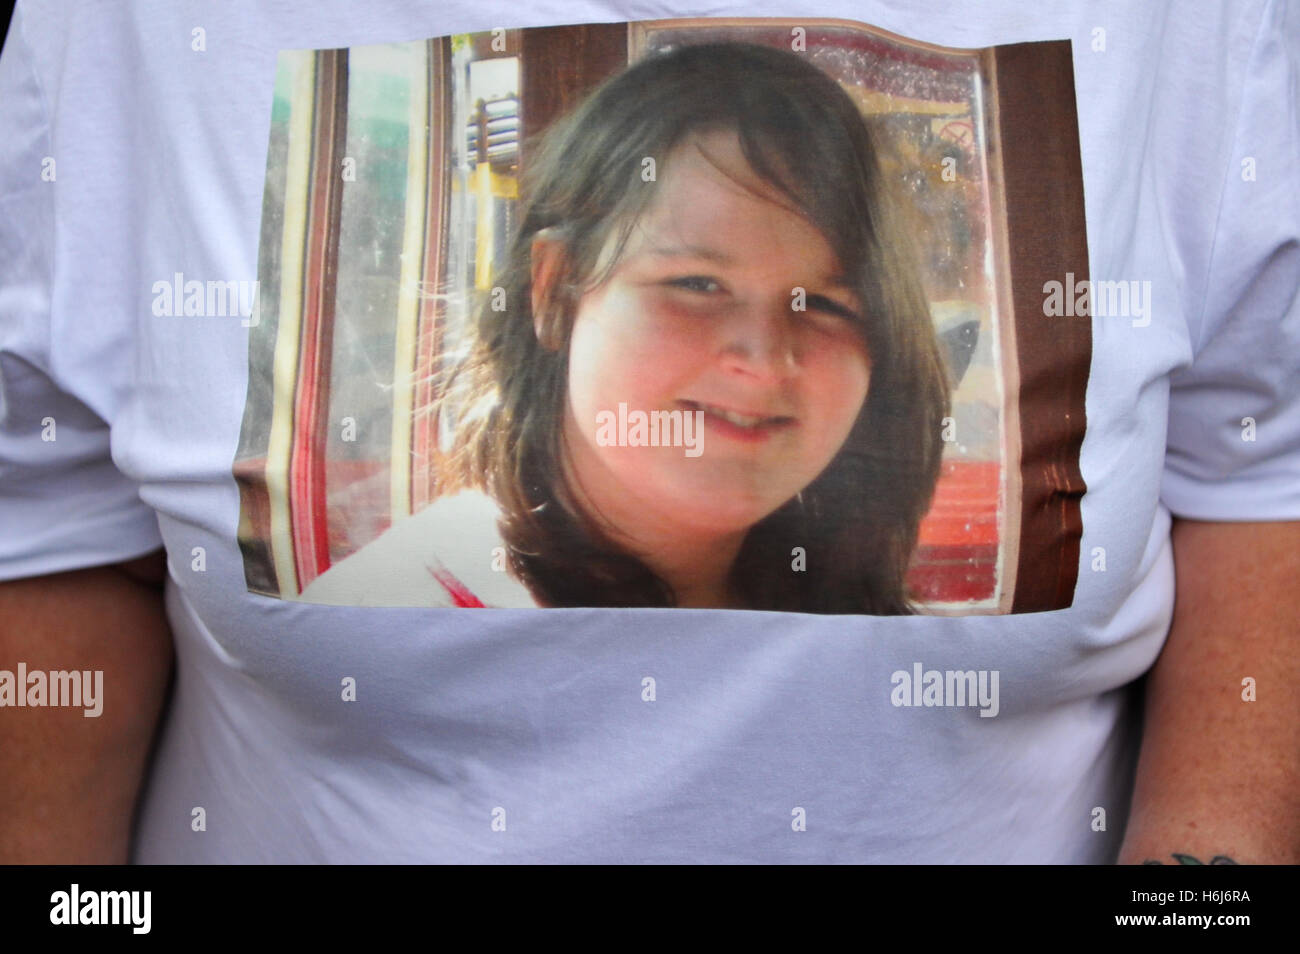 London, UK. 29th October, 2016. A picture of 14 year old Amy El-Keria who died while in secure accommodation on - Stock Image